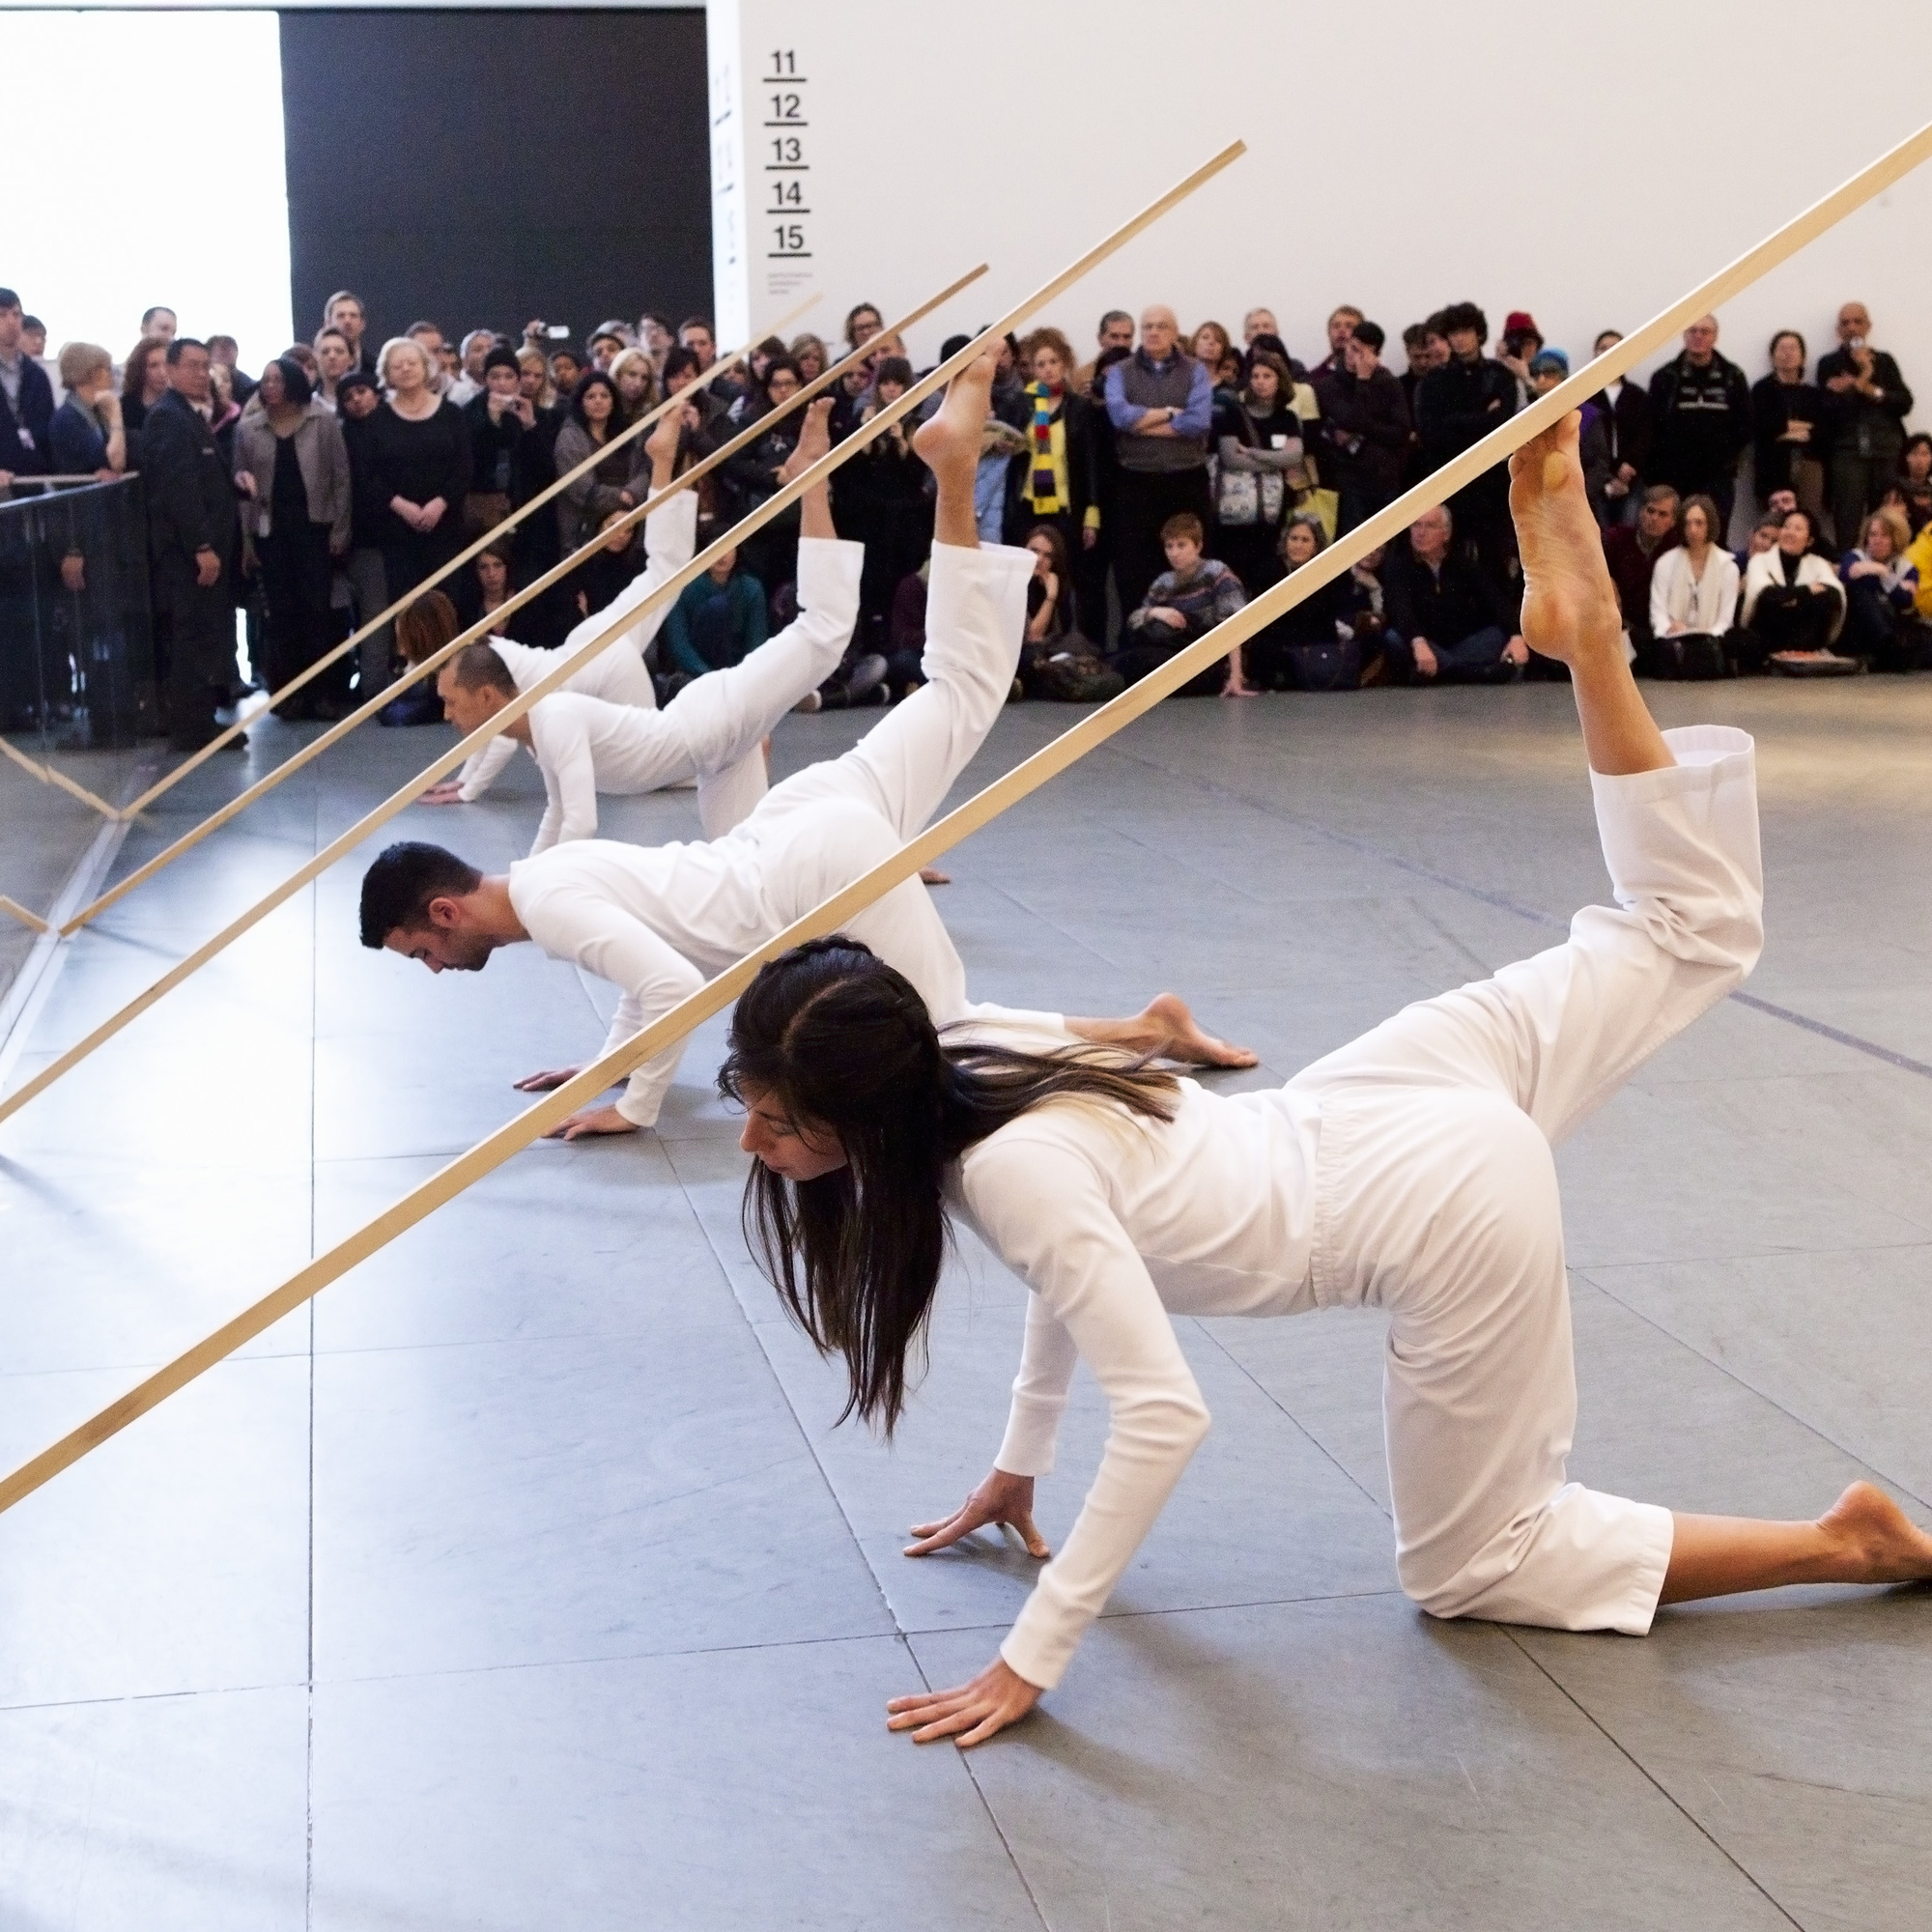 Trisha Brown Dance Company. Sticks. 1973. Performed at The Museum of Modern Art, 2011. © Yi-Chun Wu / The Museum of Modern Art, New York